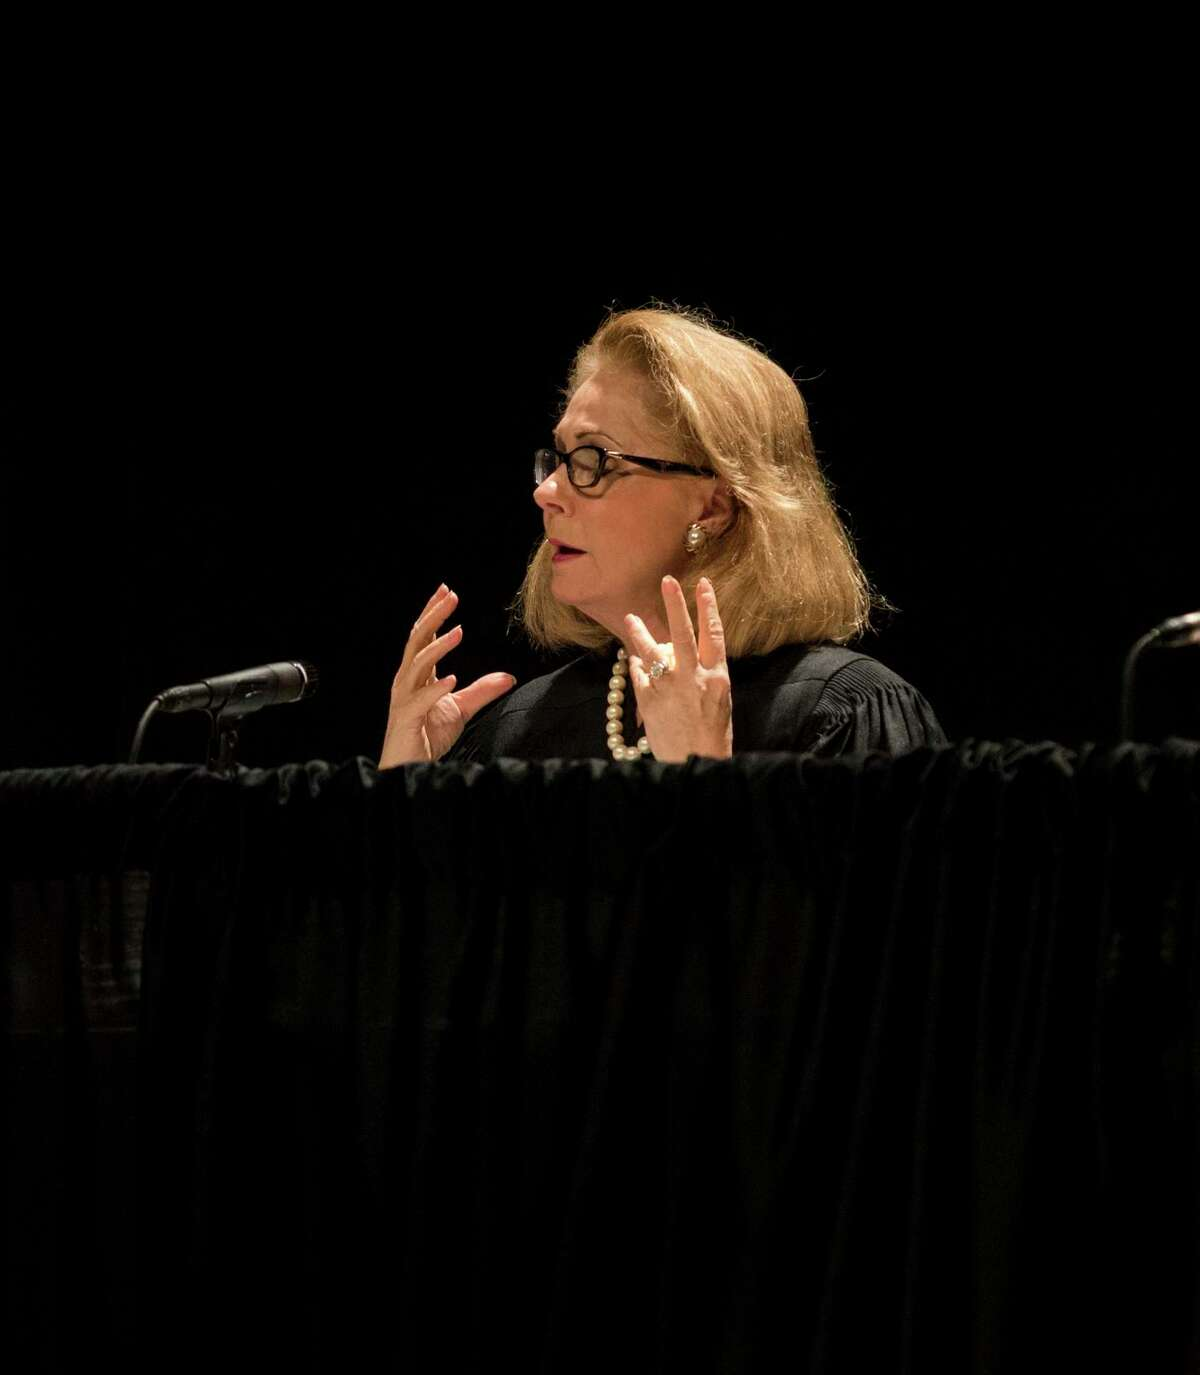 The Texas Supreme Court hears cases at the Wagner Noel Performing Arts Center on Wednesday. Justice zebra H. Lehrmann addresses Lisa Bowlin Hobbs a petitioner from the JBS Carriers Inc. and James Lundry v. Trinette L Washington et al. case 9/19/2018 Jacy Lewis/191 News